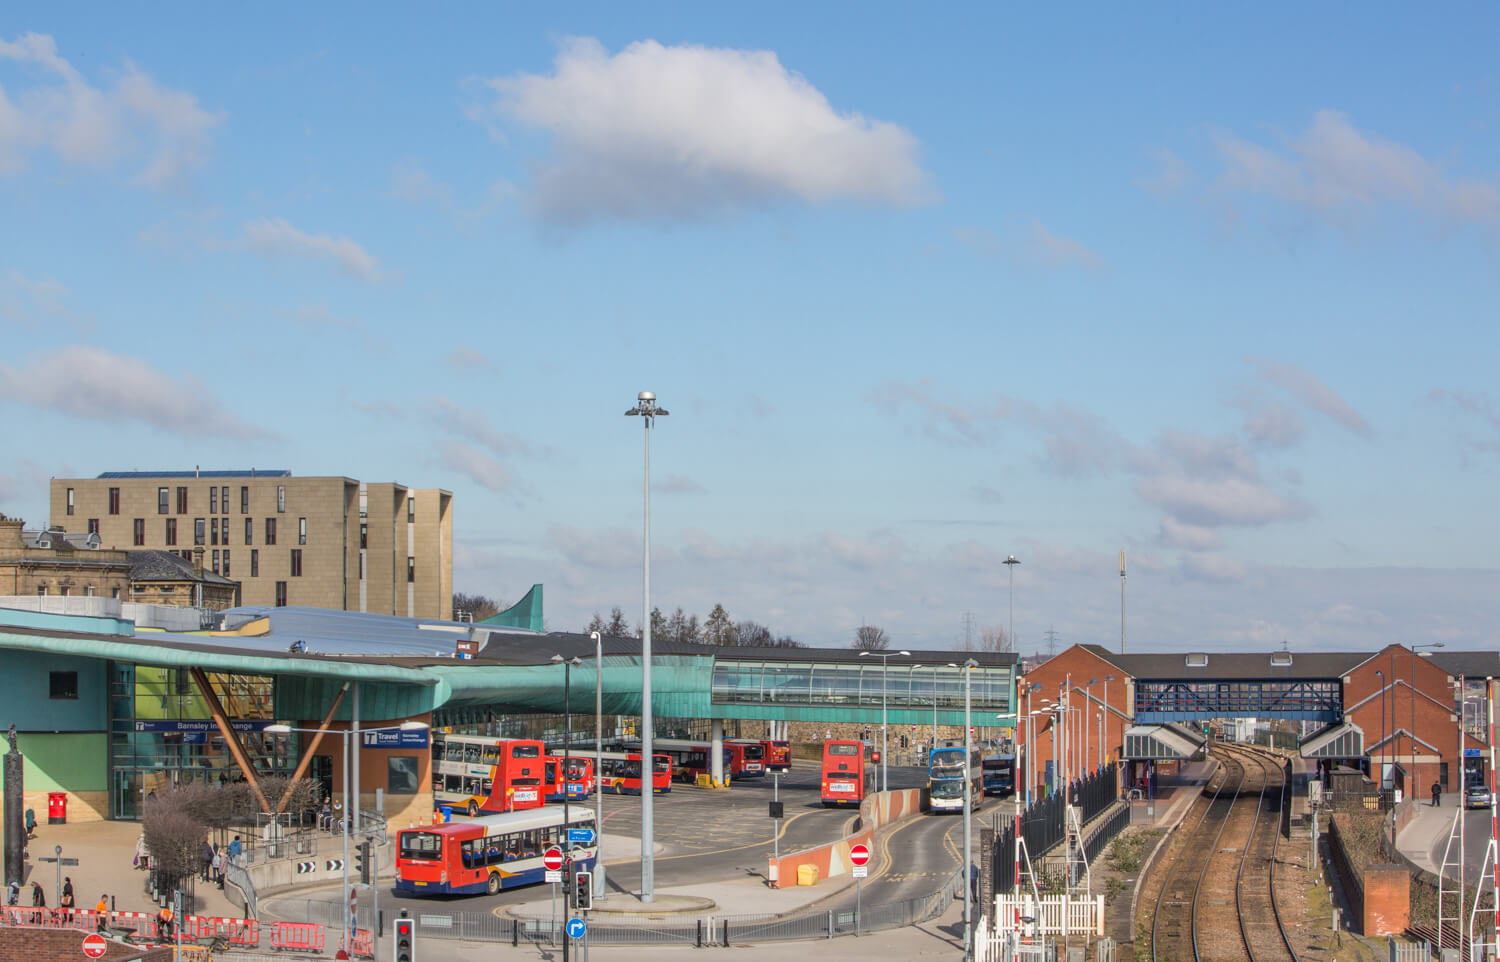 Barnsley Interchange bus and train station